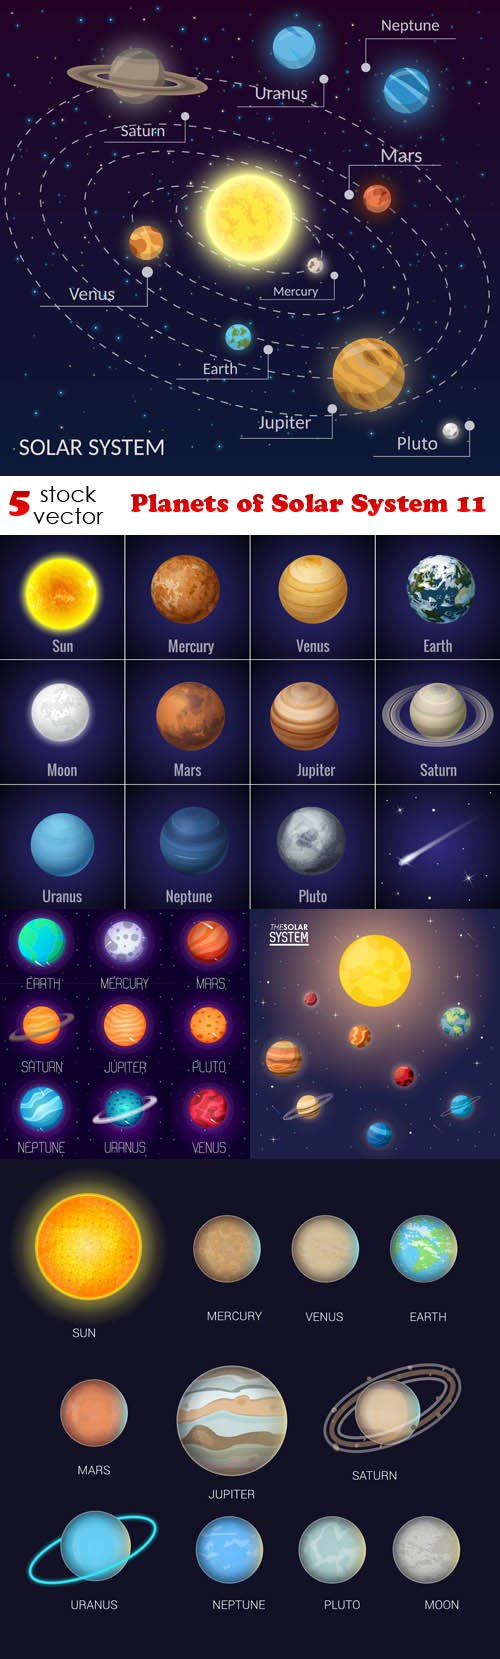 Vectors - Planets of Solar System 11